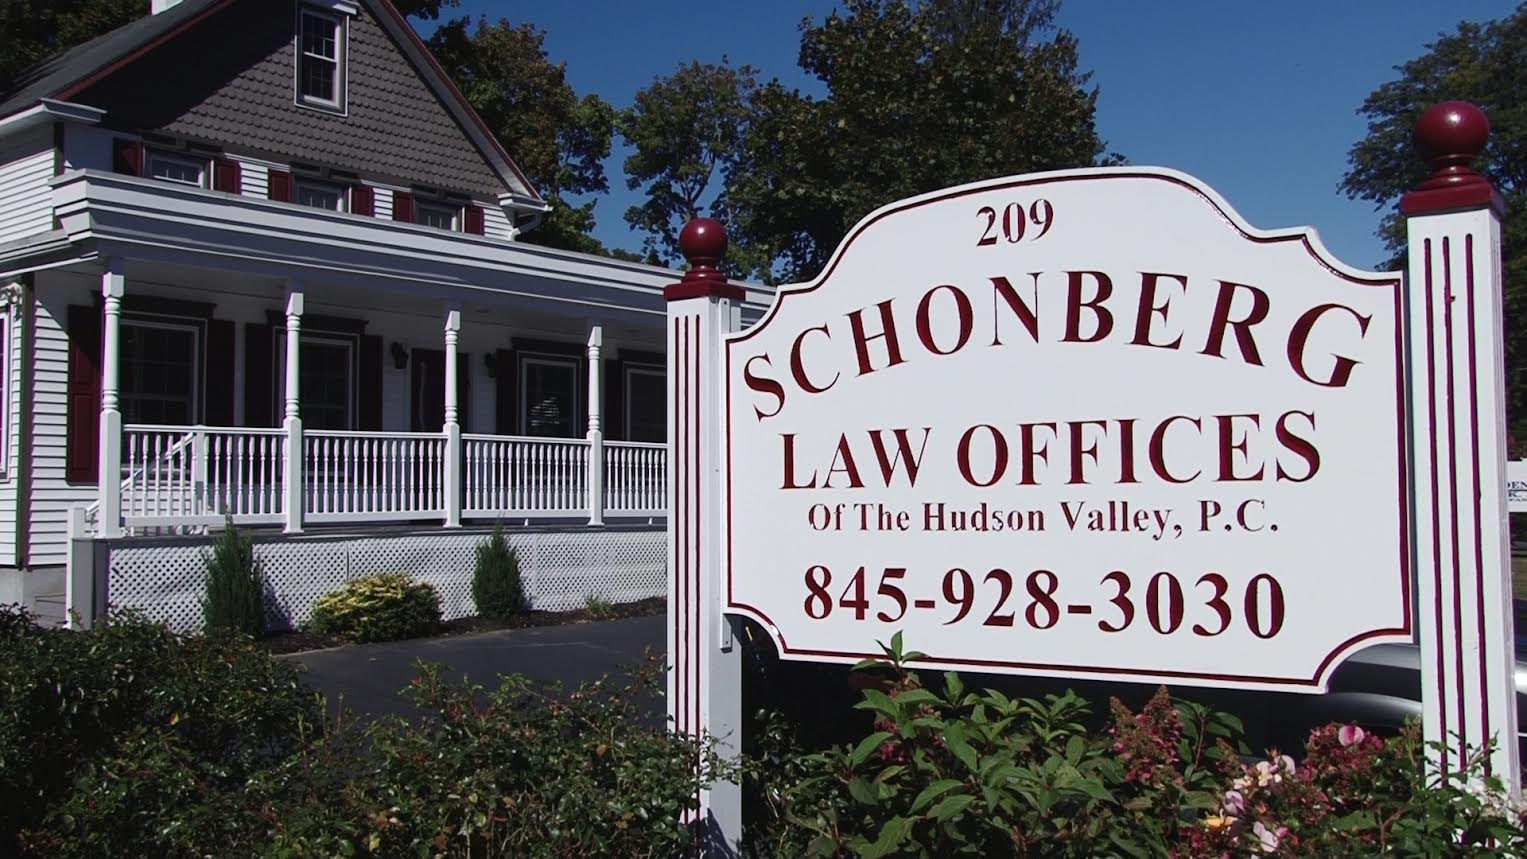 Schonberg Law Offices Of The Hudson Valley